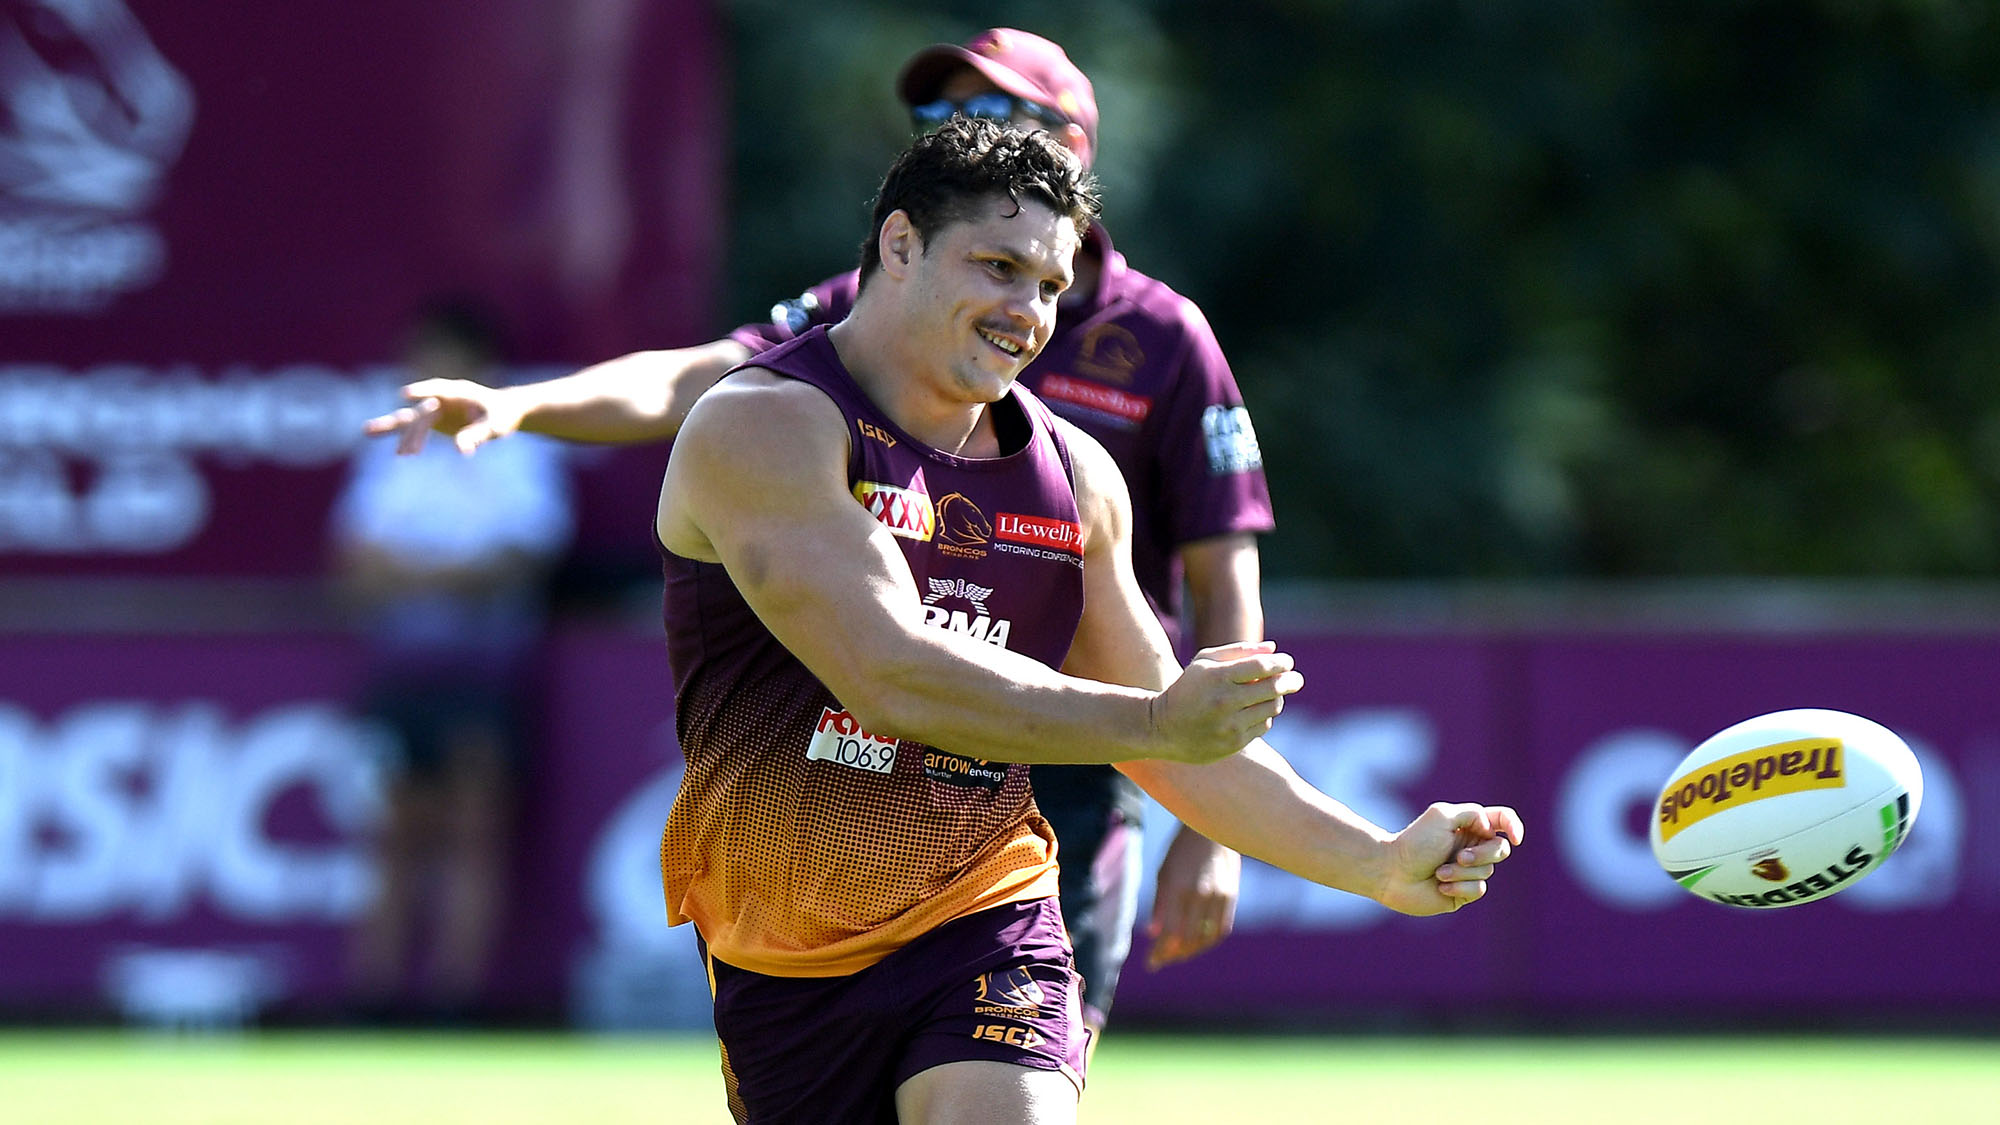 James Roberts to make reserve grade debut for Wynnum Manly Seagulls